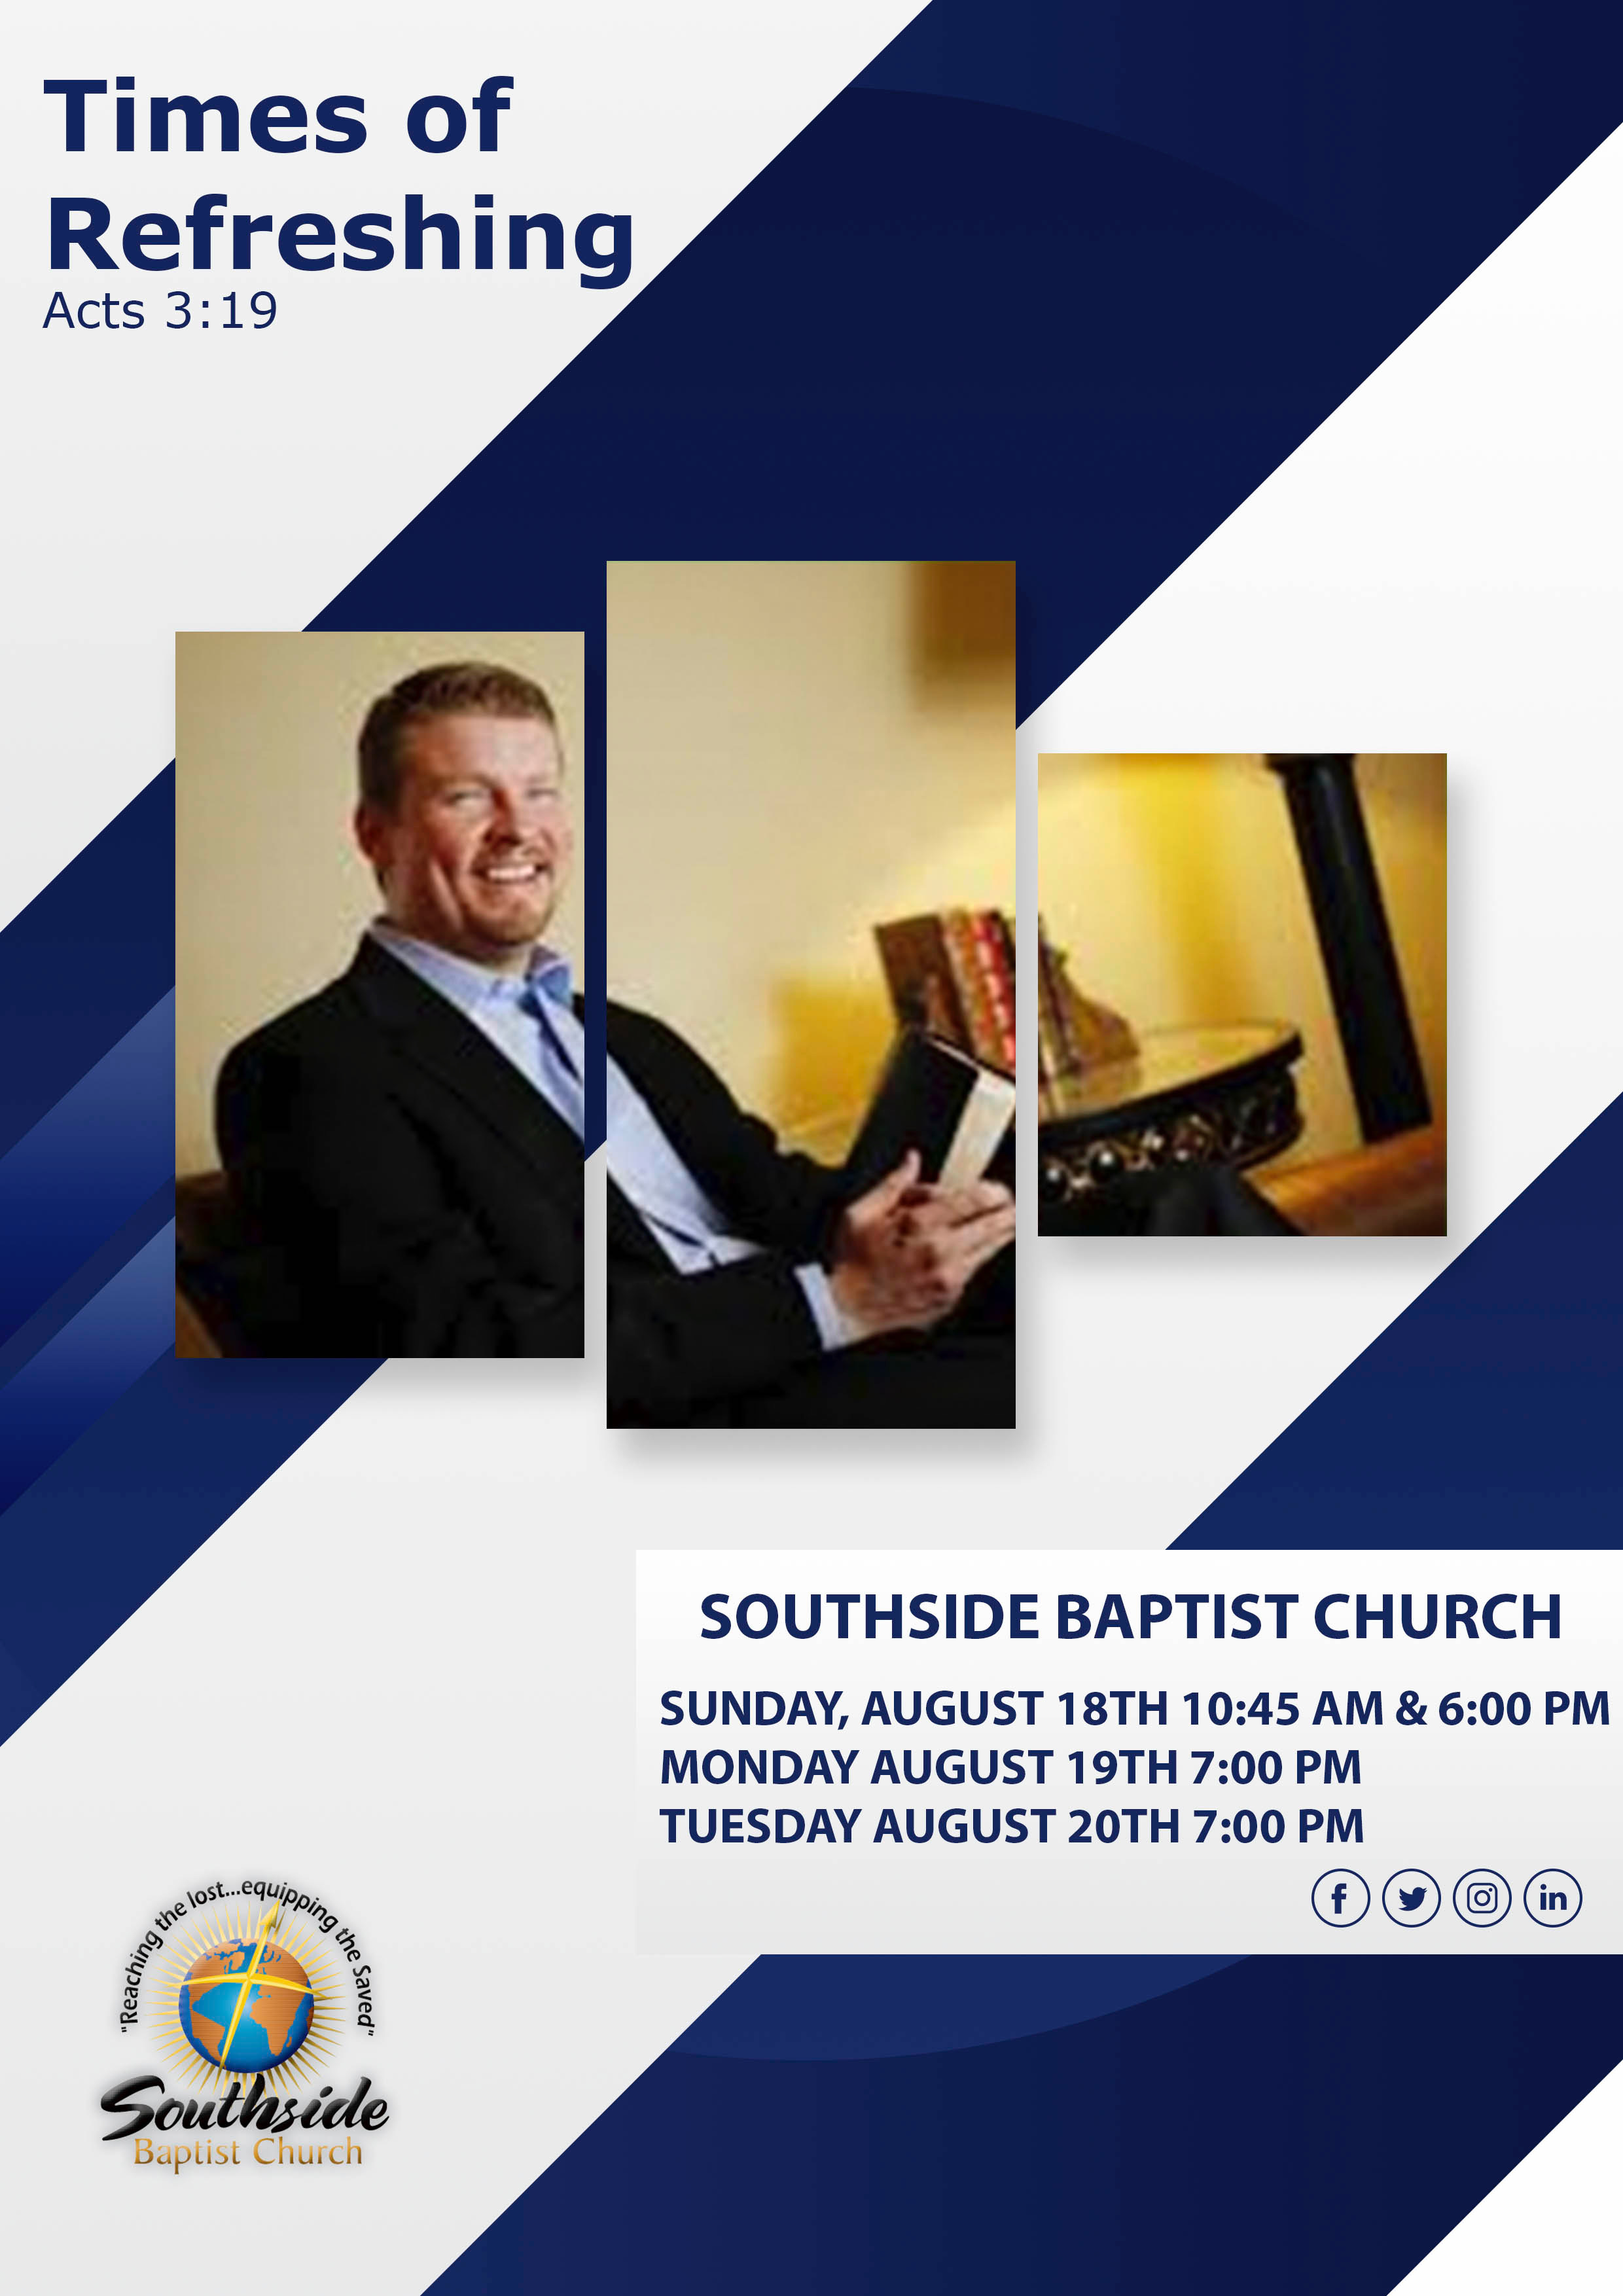 Everyone is welcome to join us for this wonderful event featuring guest speaker Scott Smith.